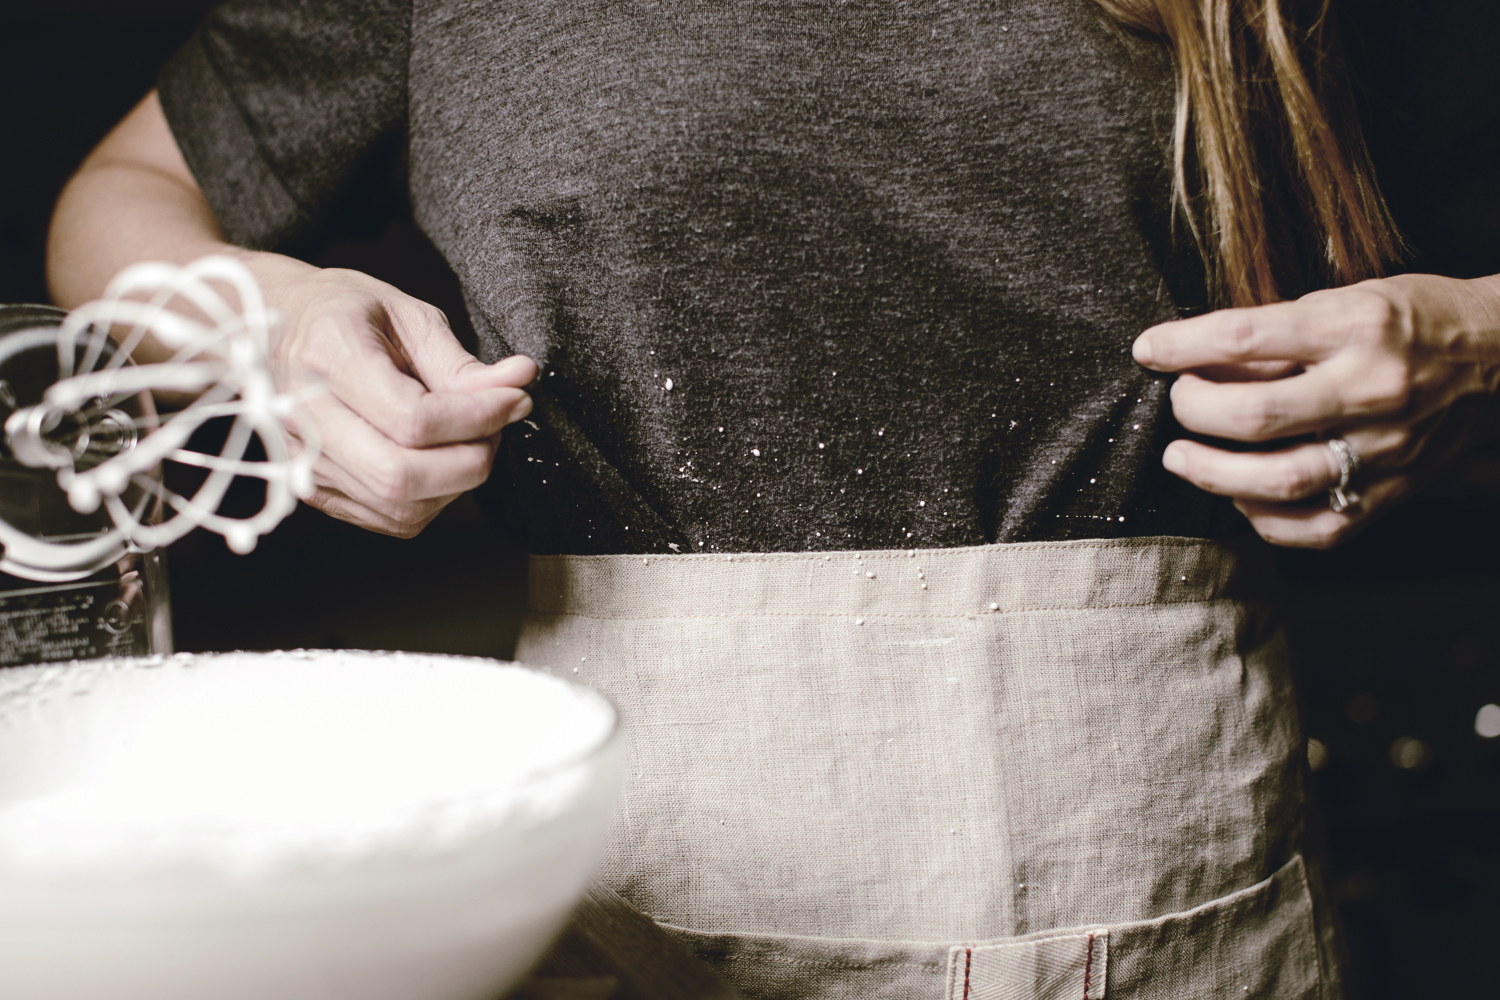 messy cooks use aprons / meringue recipe / heirloomed